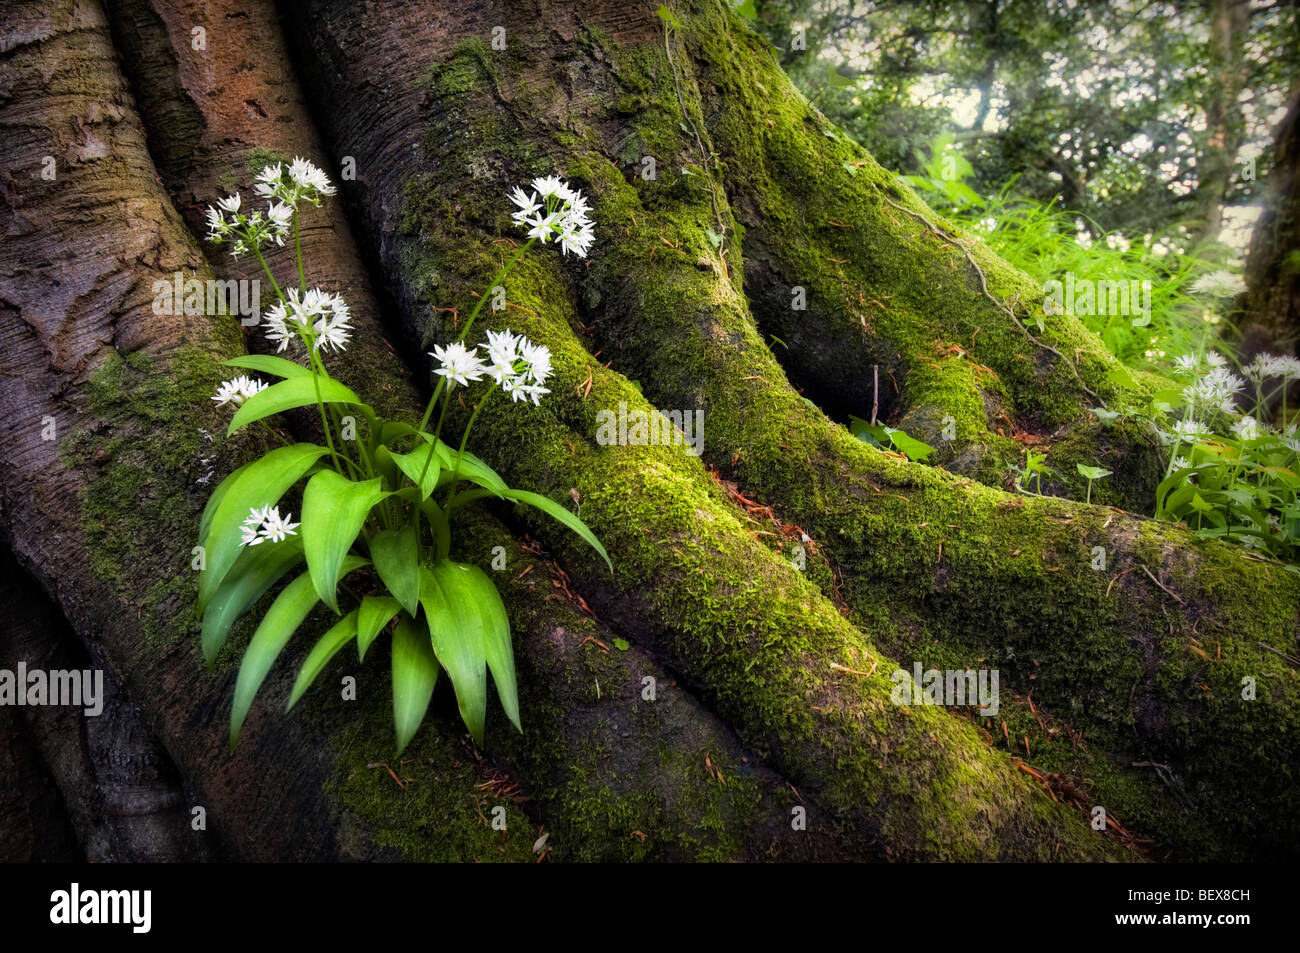 Wild garlic plant growing out of old tree roots covered in moss with sun rays in background taken at Tintern Monmouthshire - Stock Image